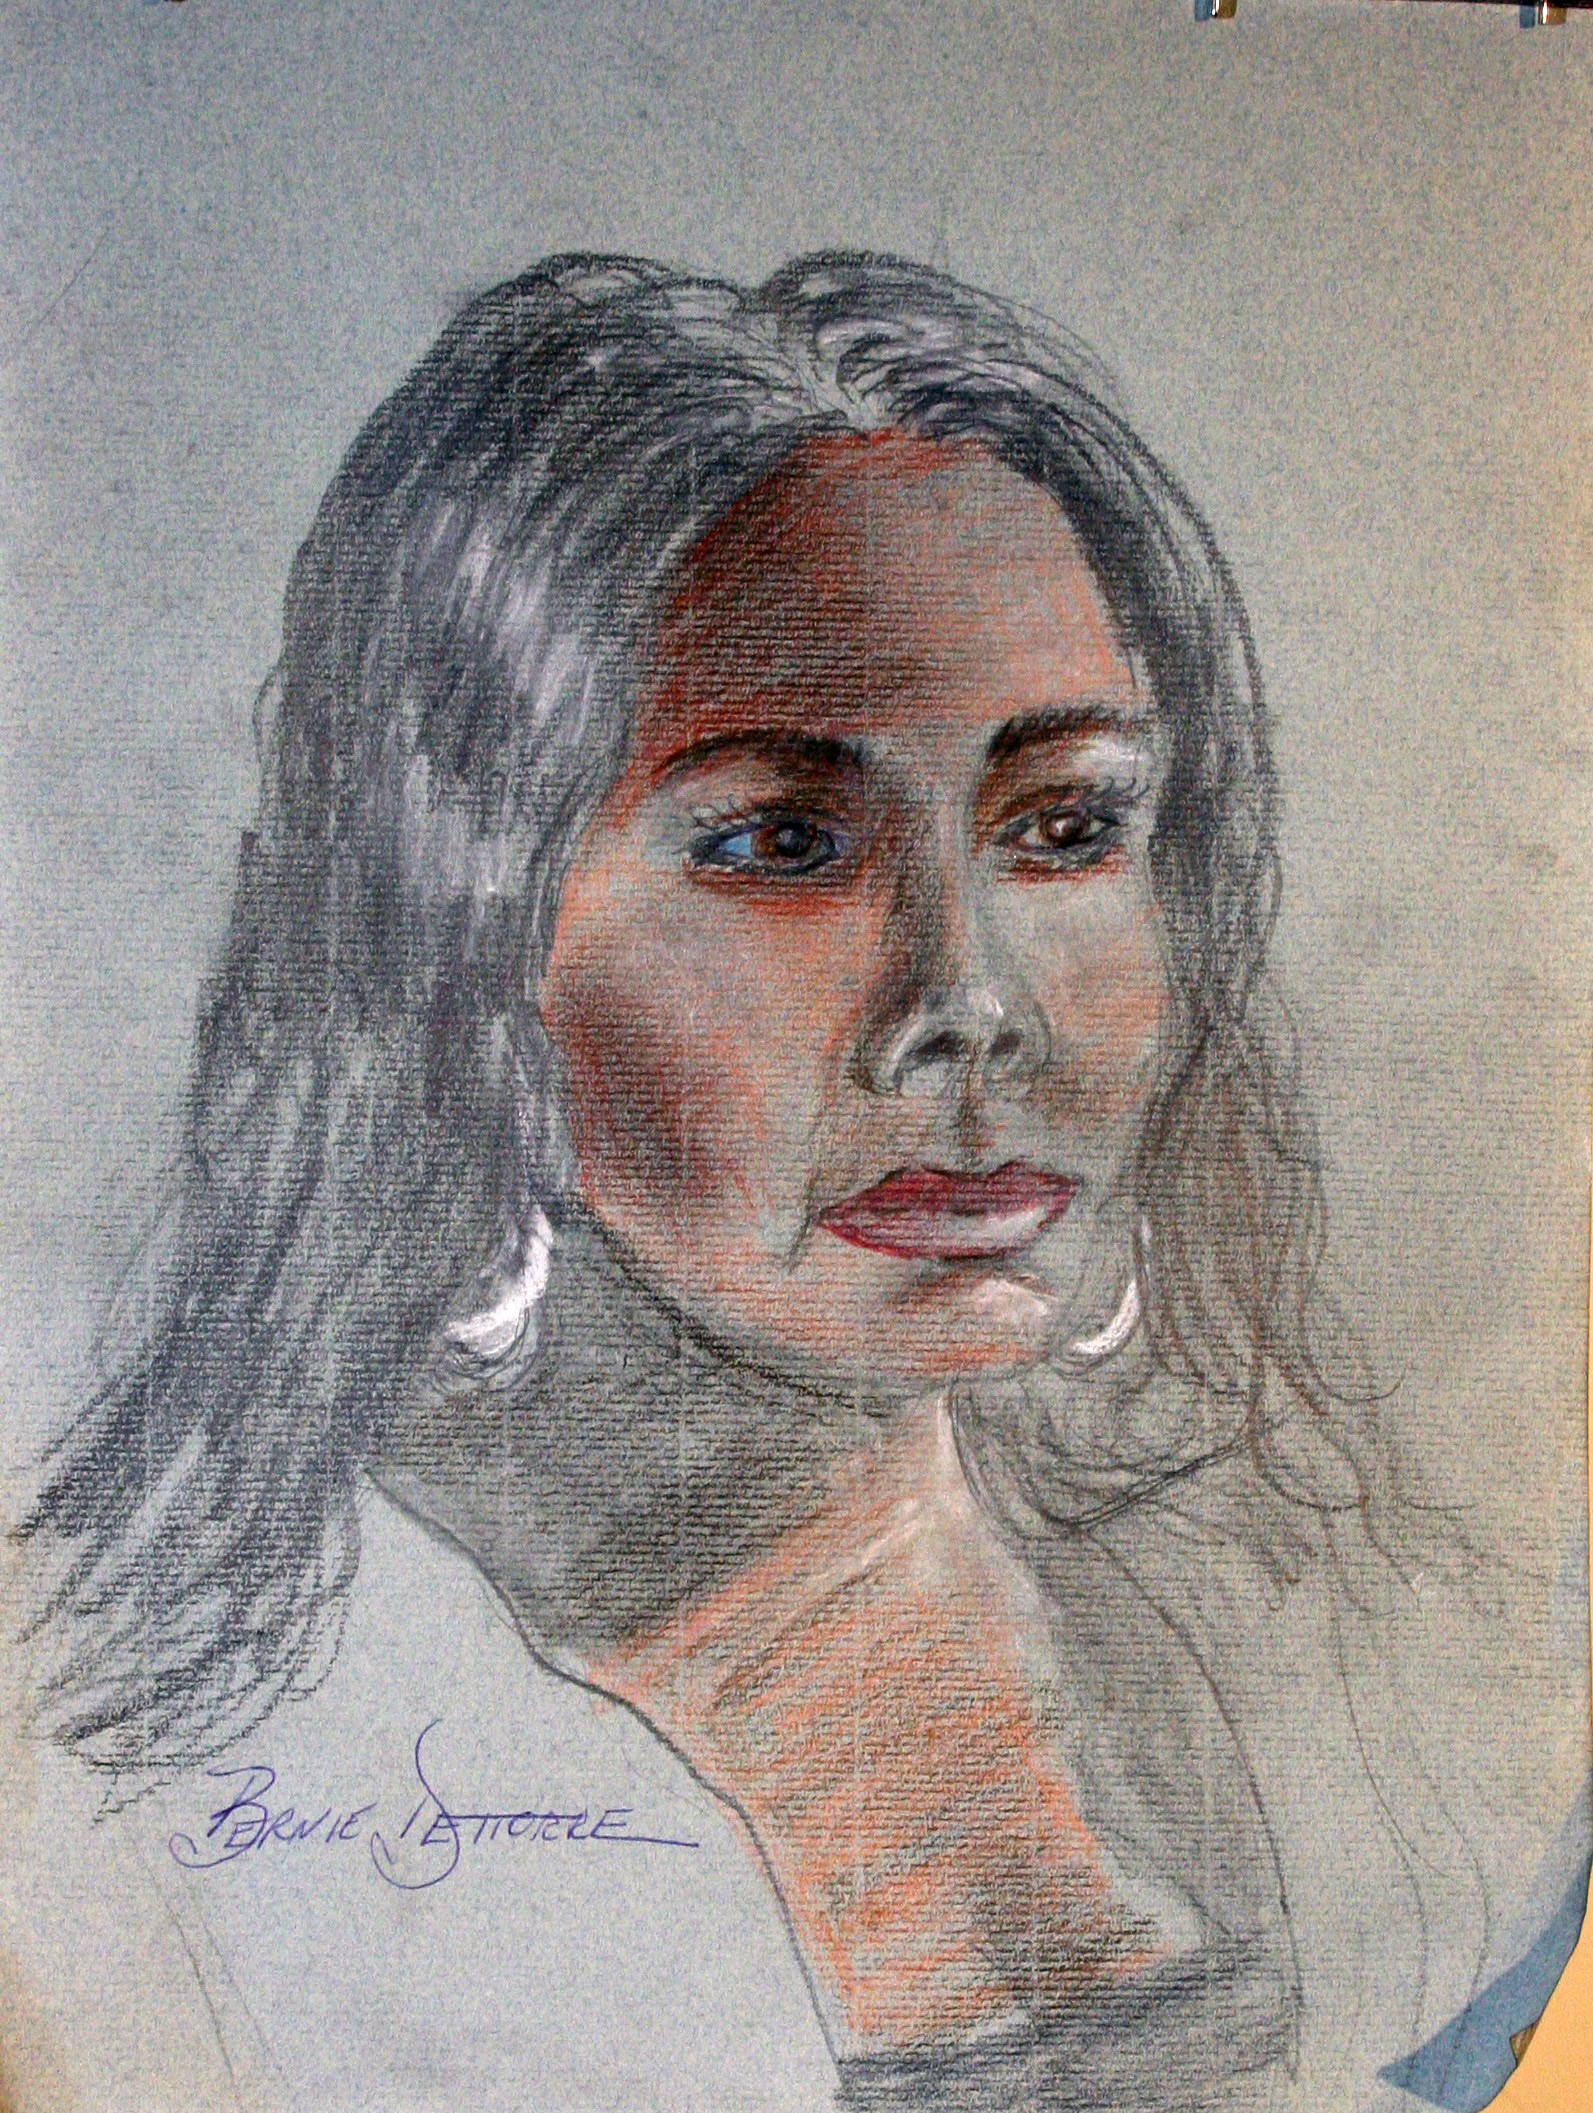 Bernie D'ettorre did this drawing.